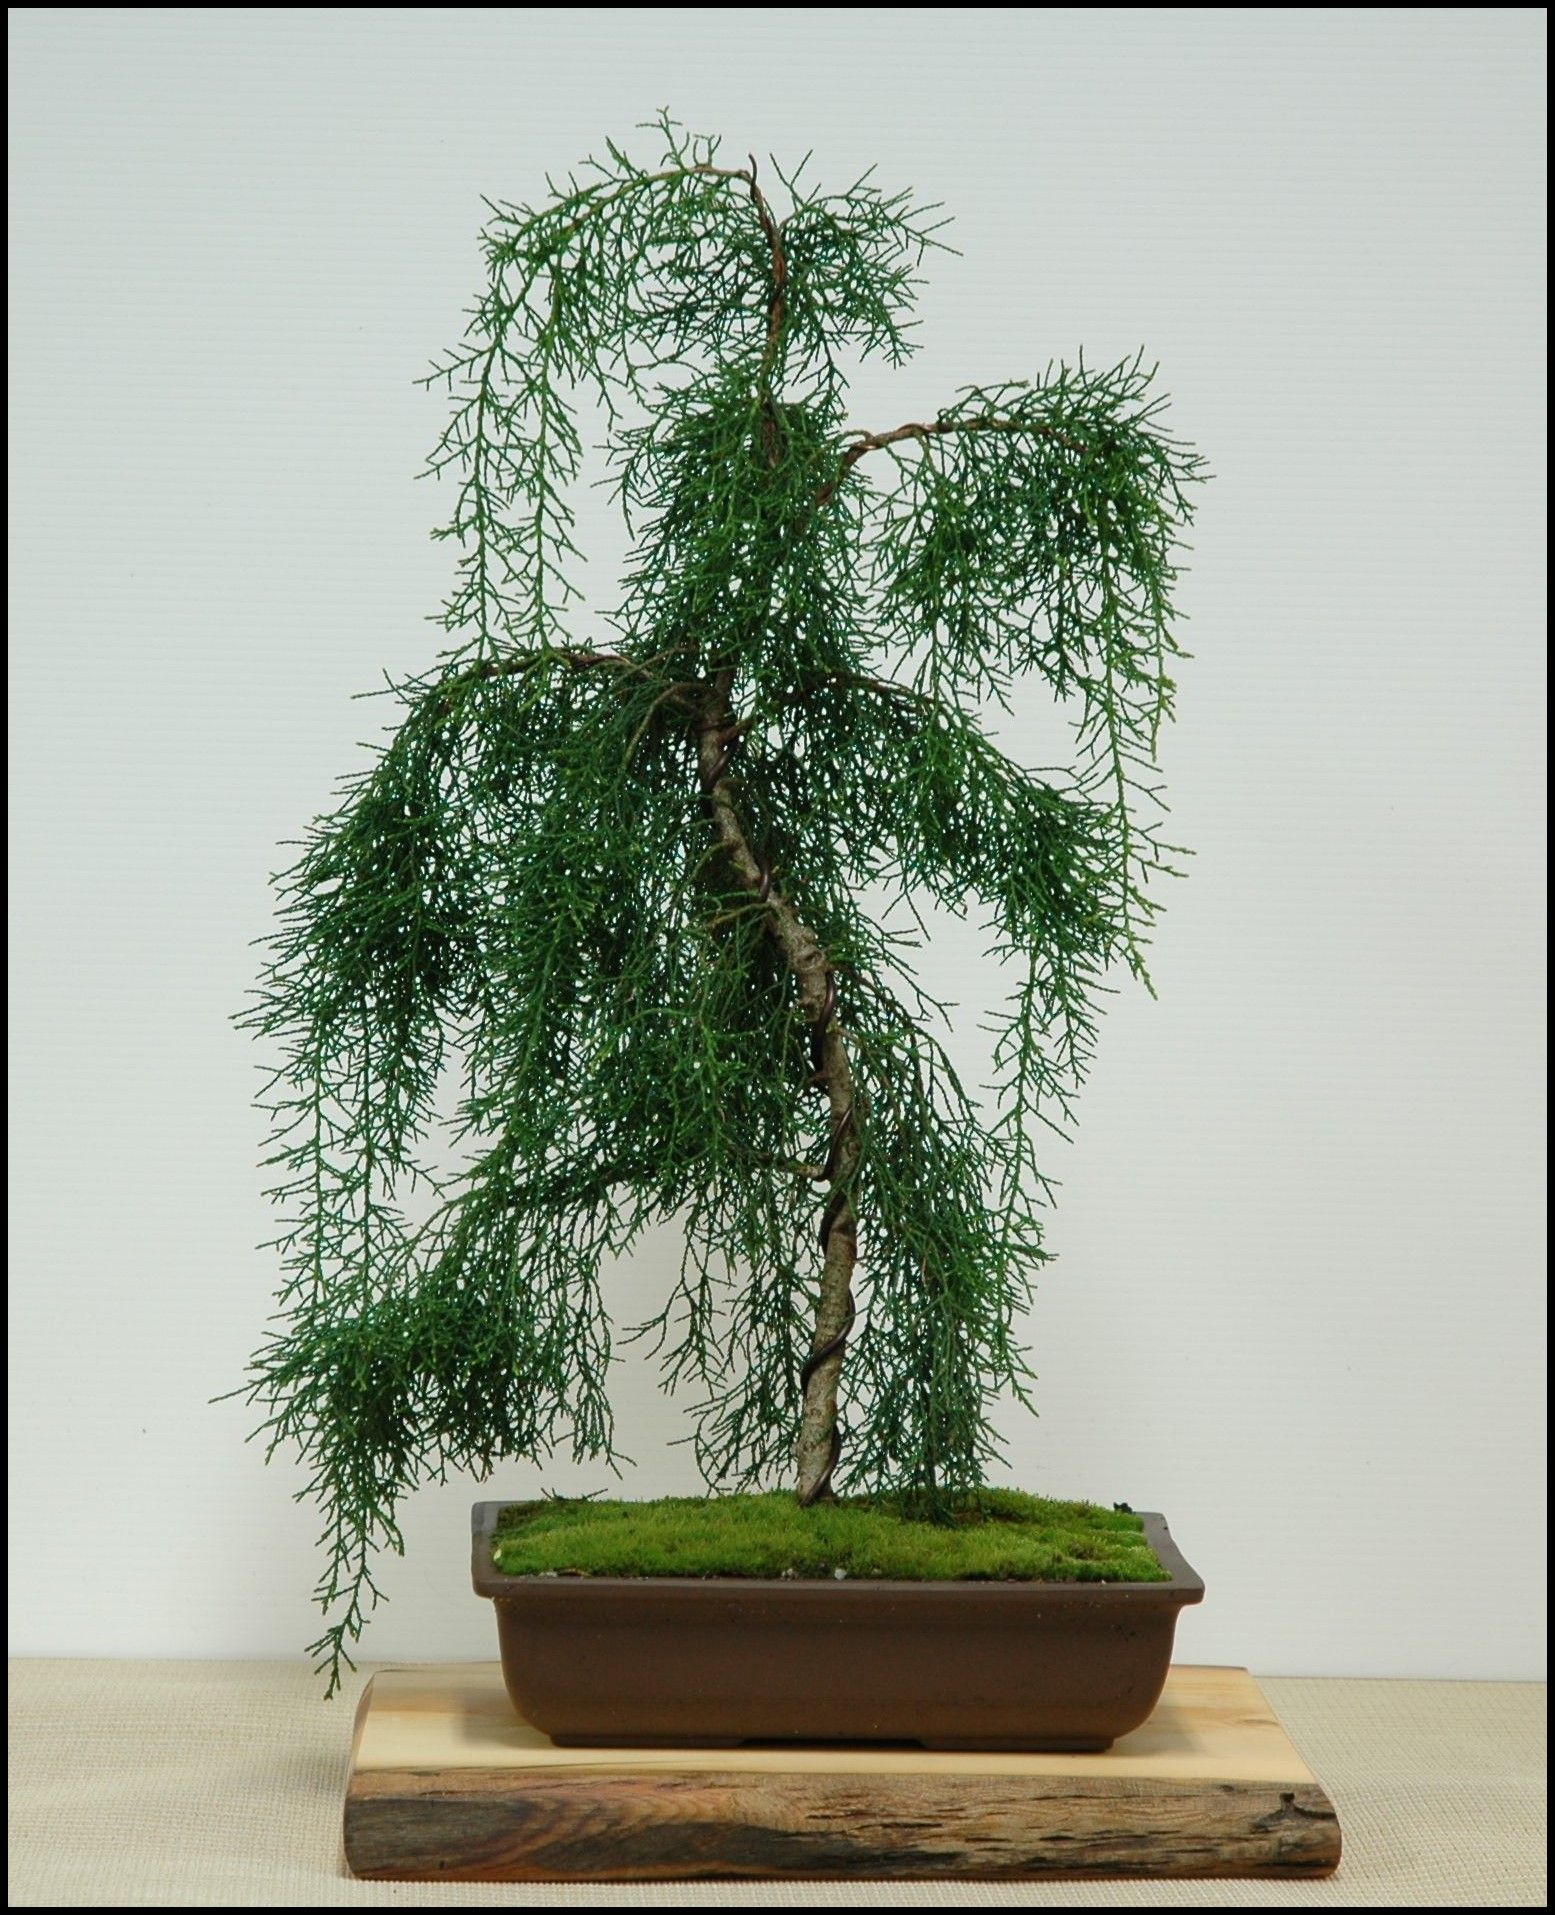 Huon pine (Largarostrobus franklinii) as a bonsai. Ancient, long lived, gorgeous timber.